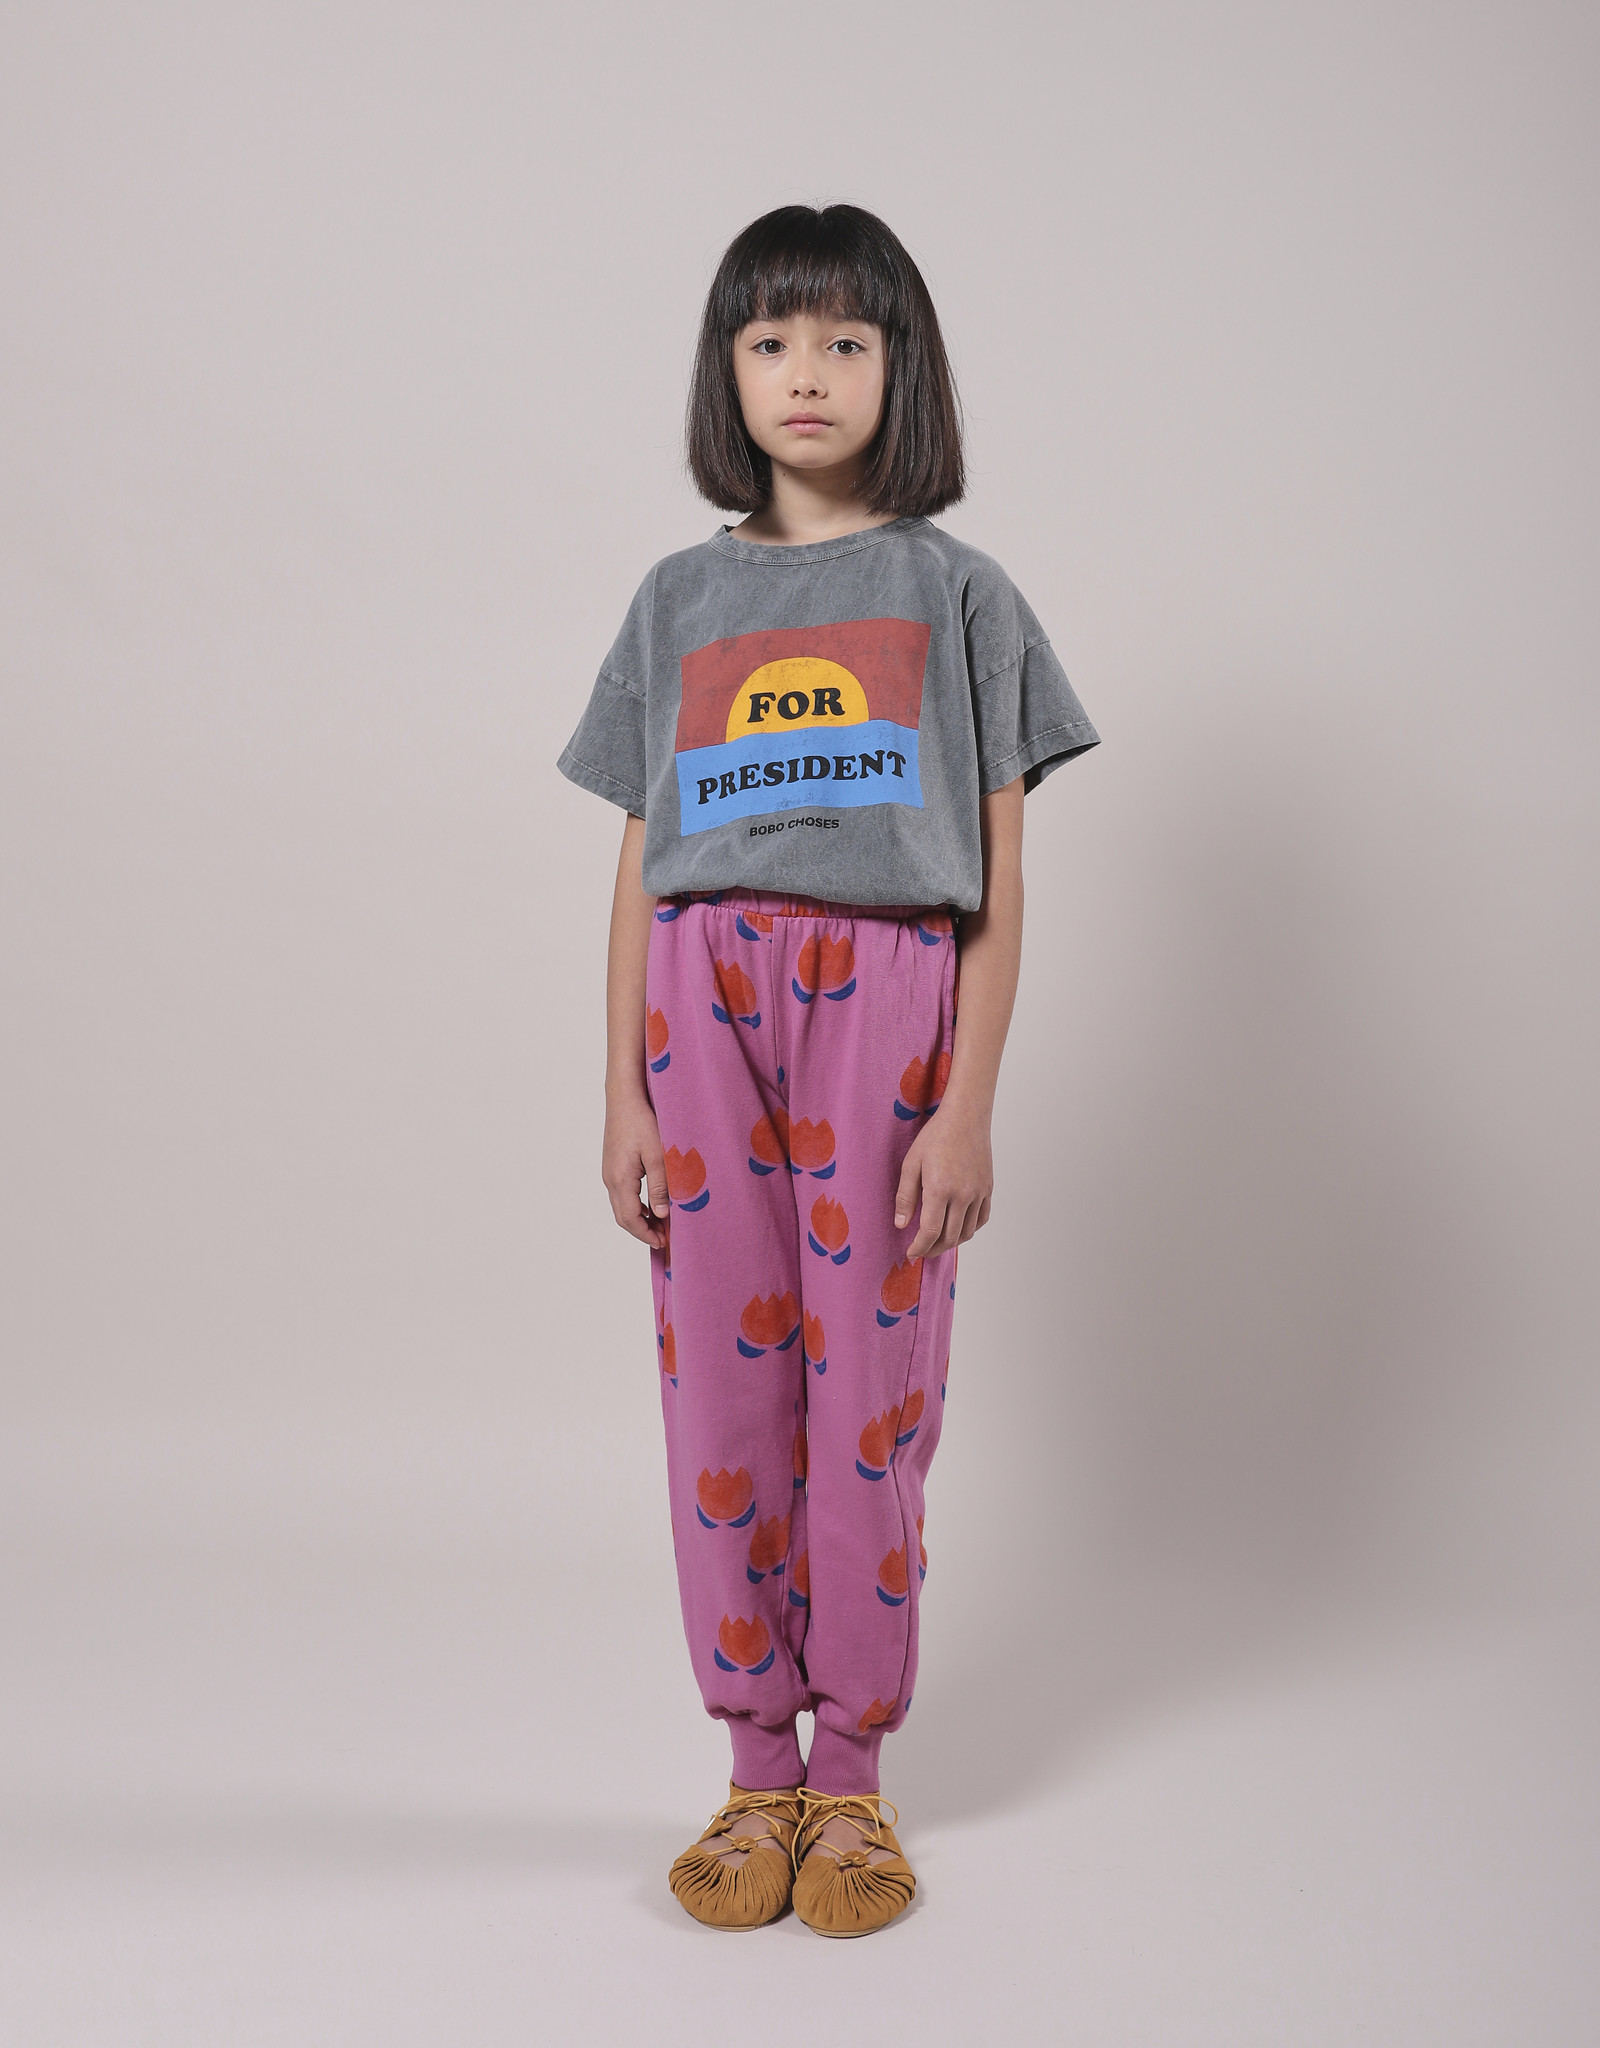 Bobo Choses For President T-Shirt